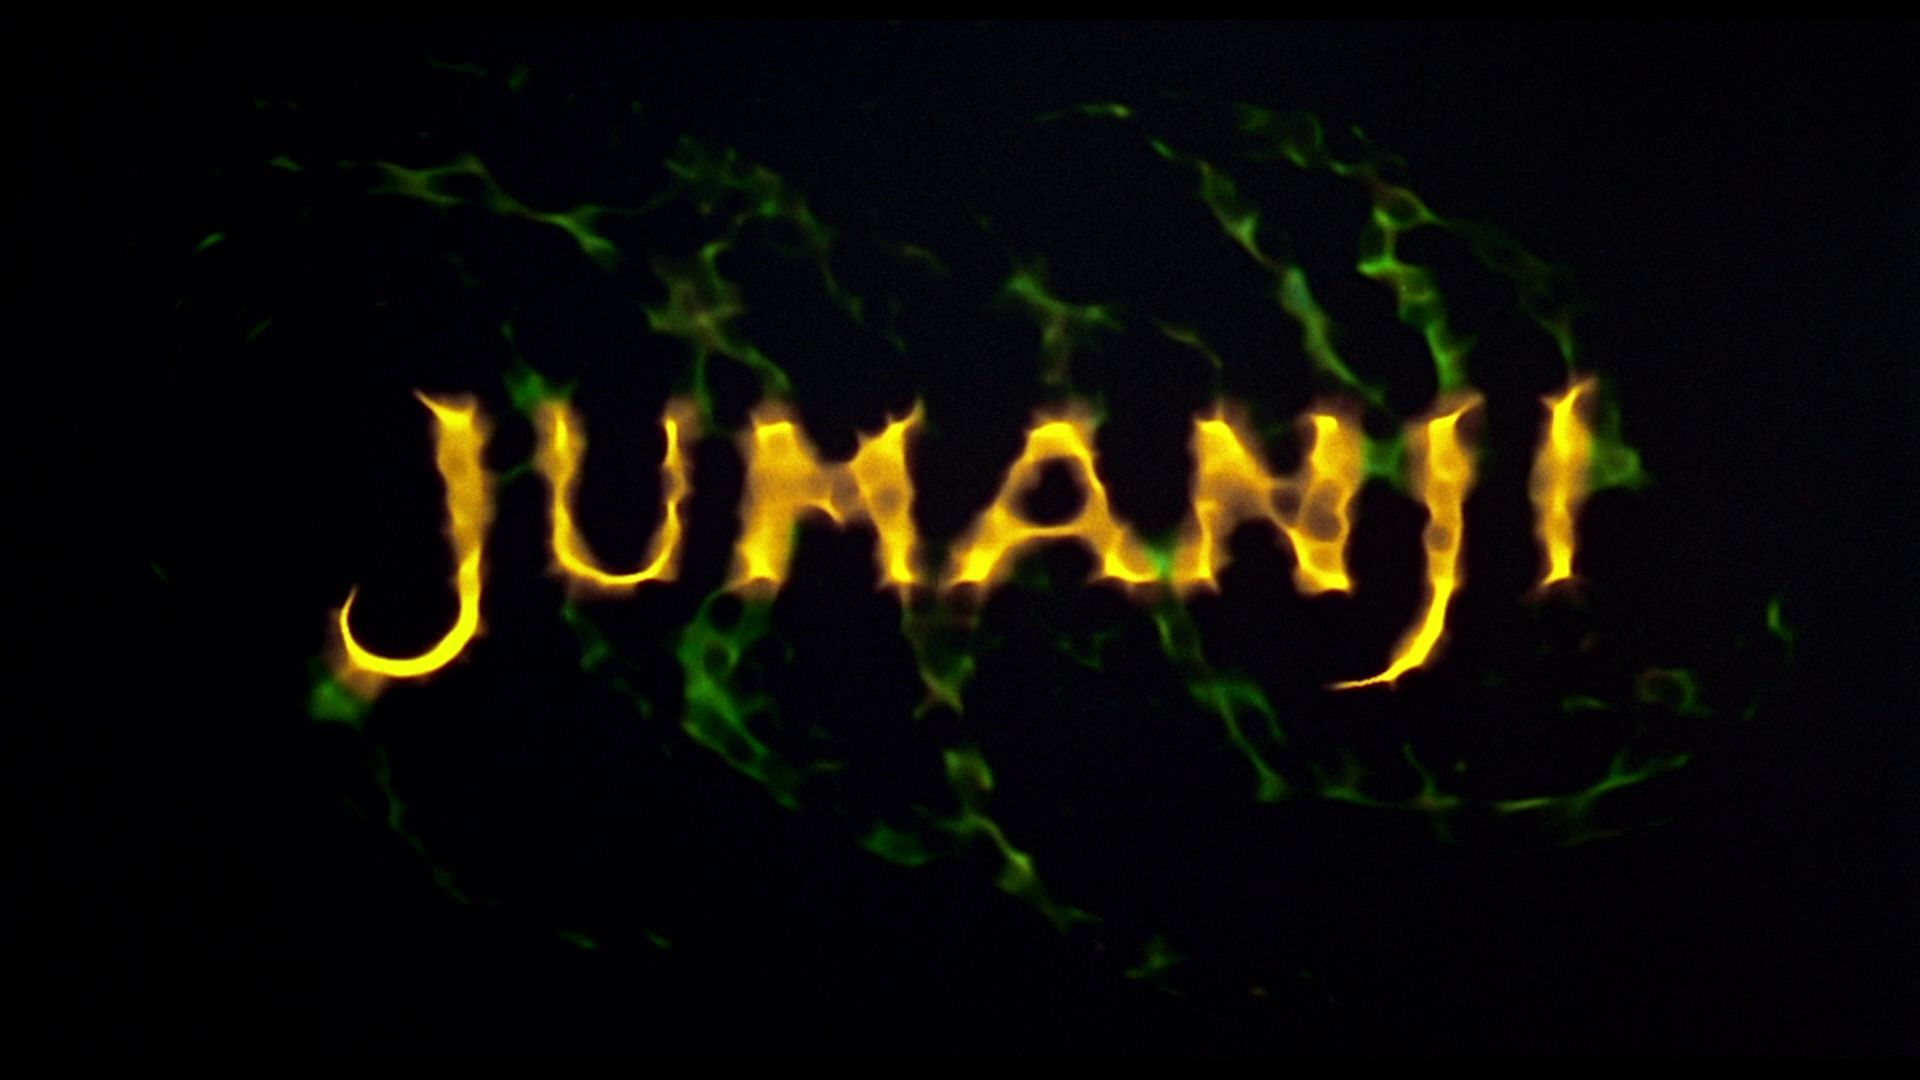 Jumanji (20th Anniversary Edition) (Blu-ray) : DVD Talk Review of ...